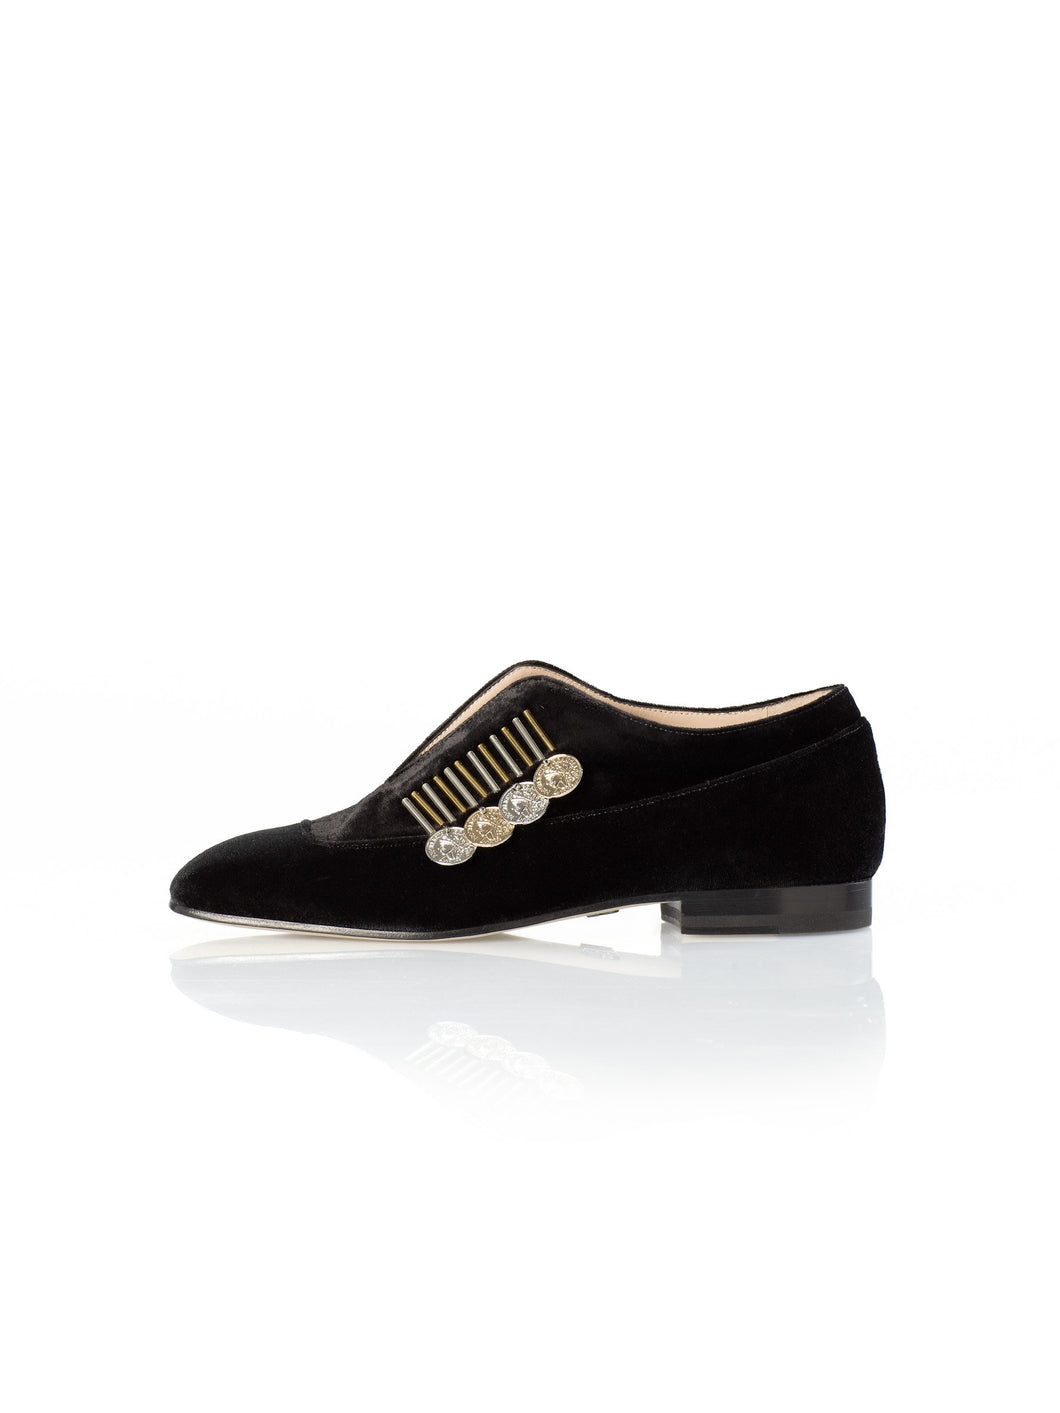 Traviata Flat in black with gold and silver accessory